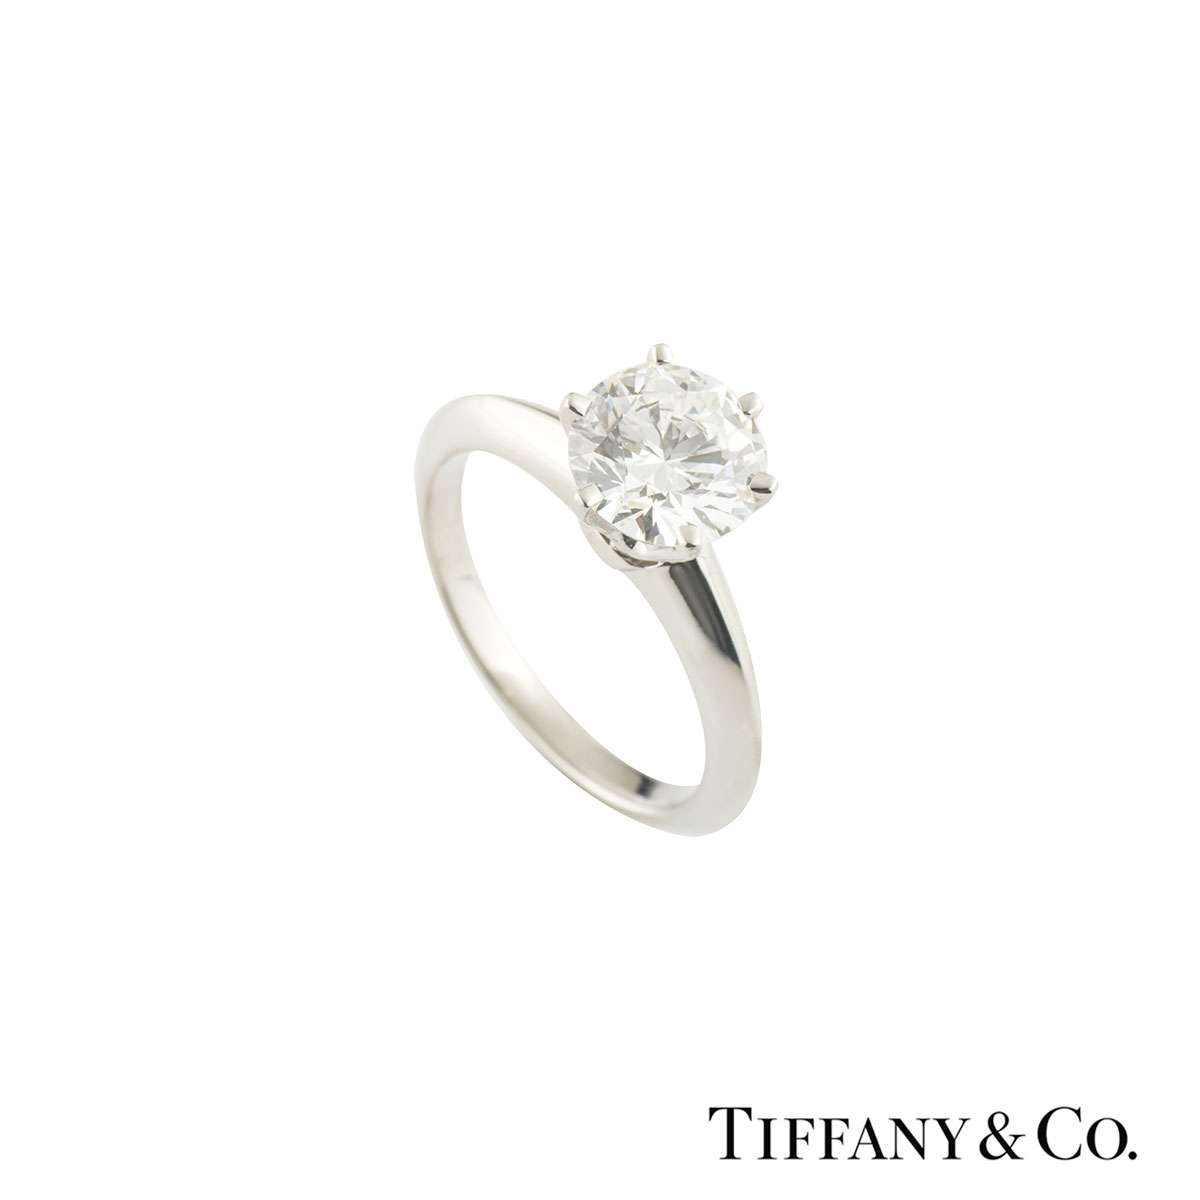 Tiffany & Co. Platinum Diamond Setting Band Ring 1.37ct H/VVS2